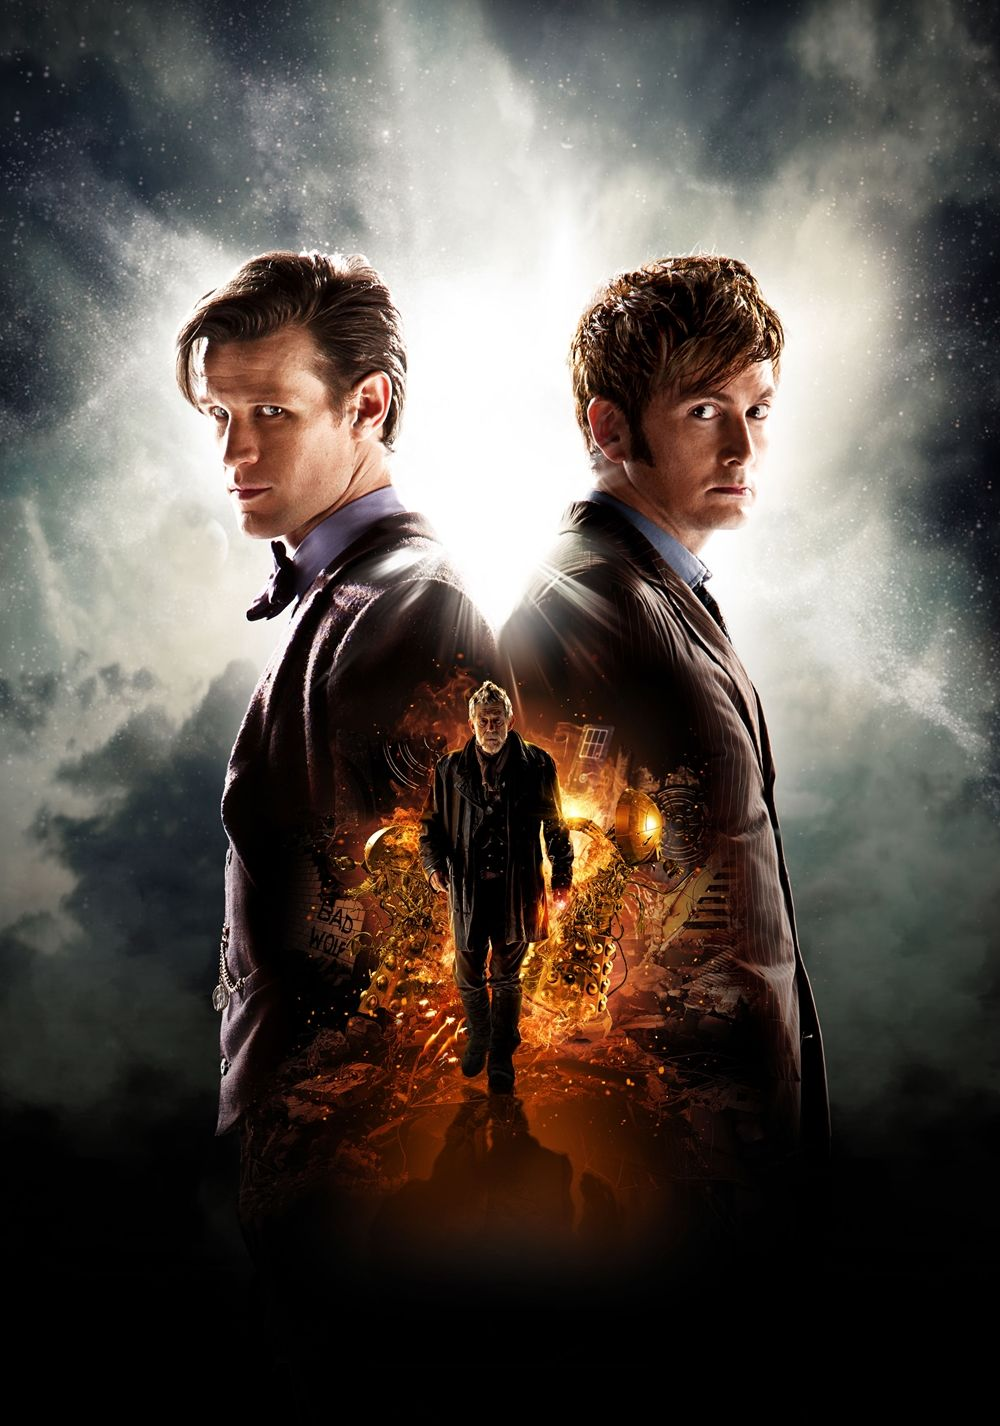 The Day of the Doctor Doctor who poster, Doctor who